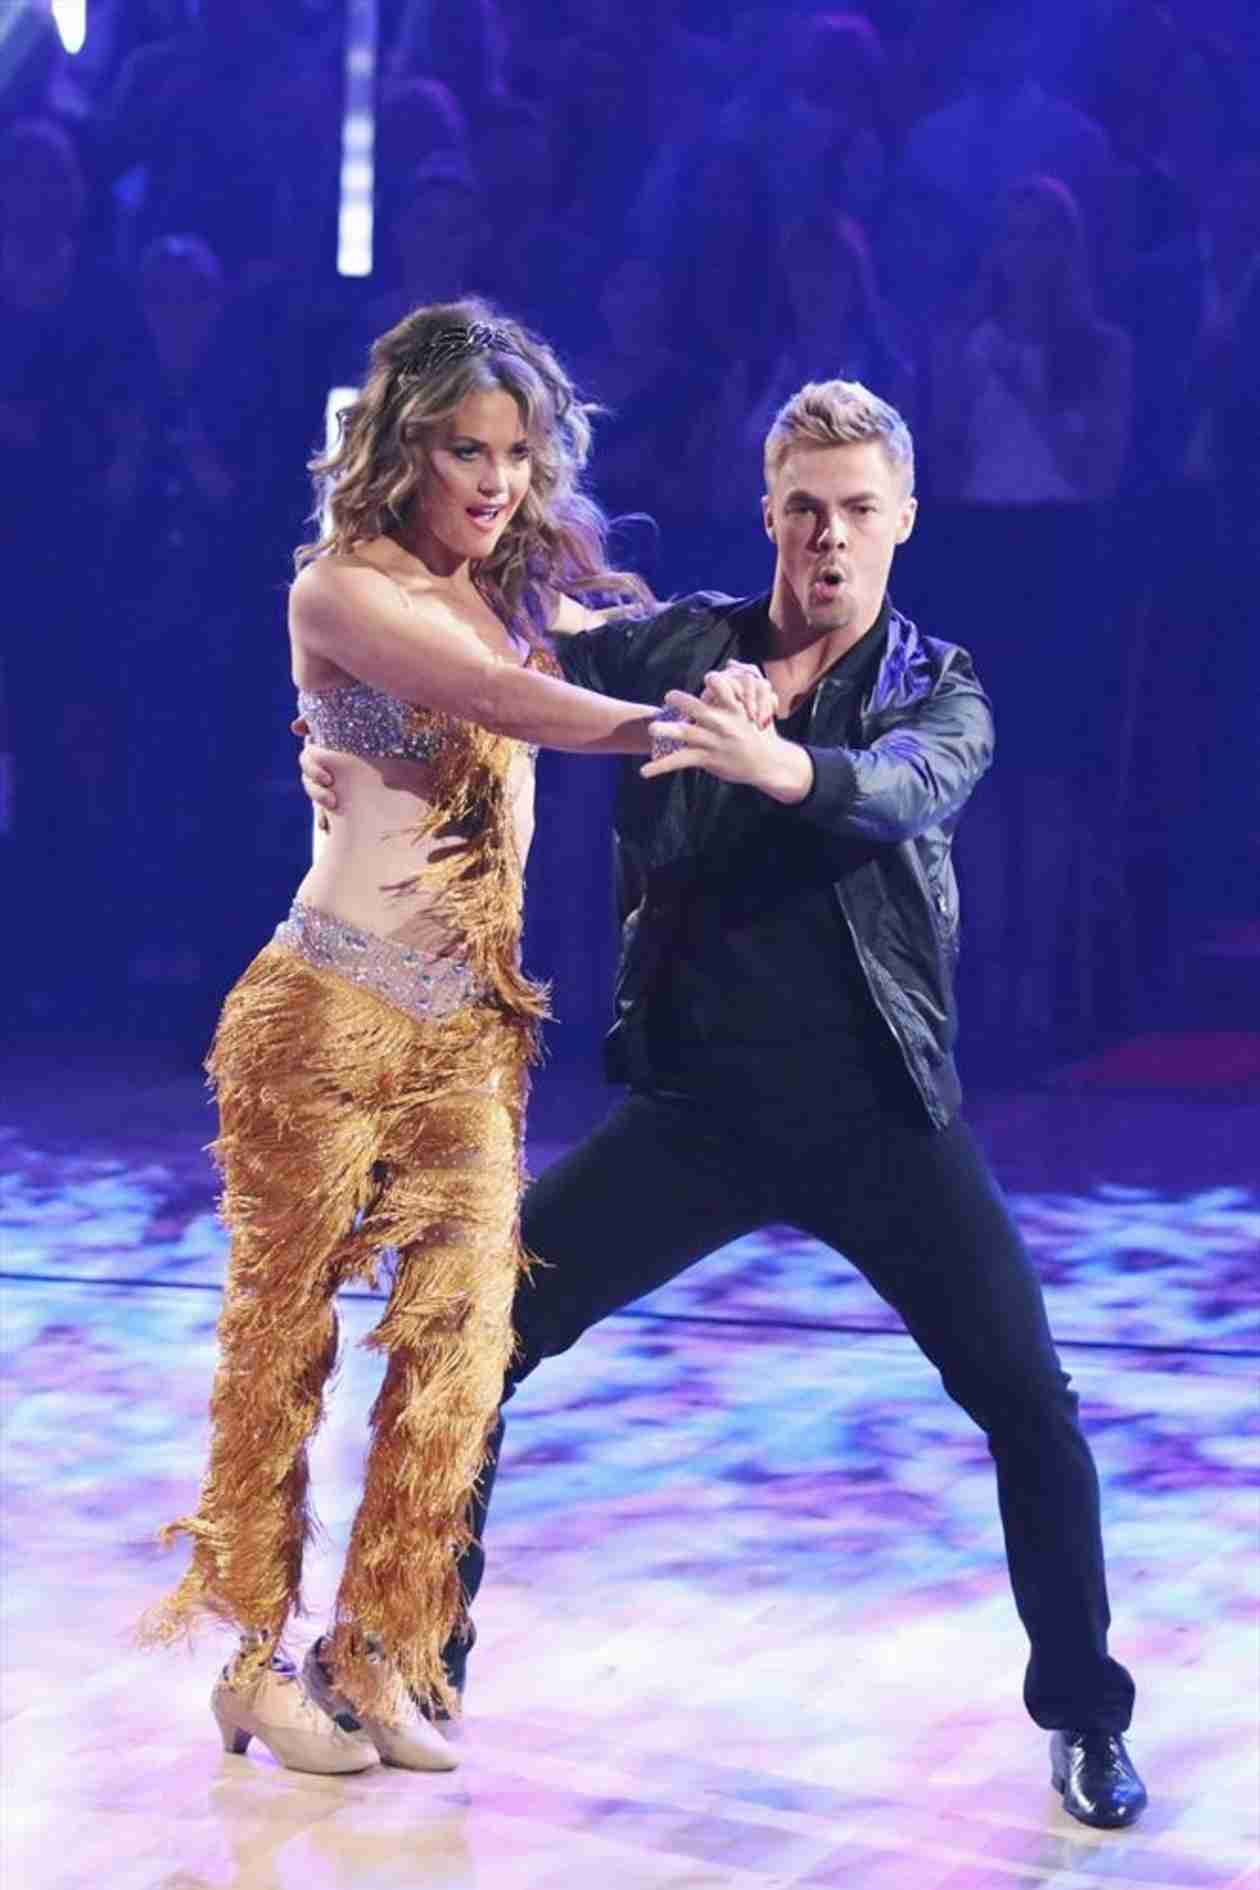 Dancing With the Stars 2014: Amy Purdy and Derek Hough's Week 9 Jazz (VIDEO)